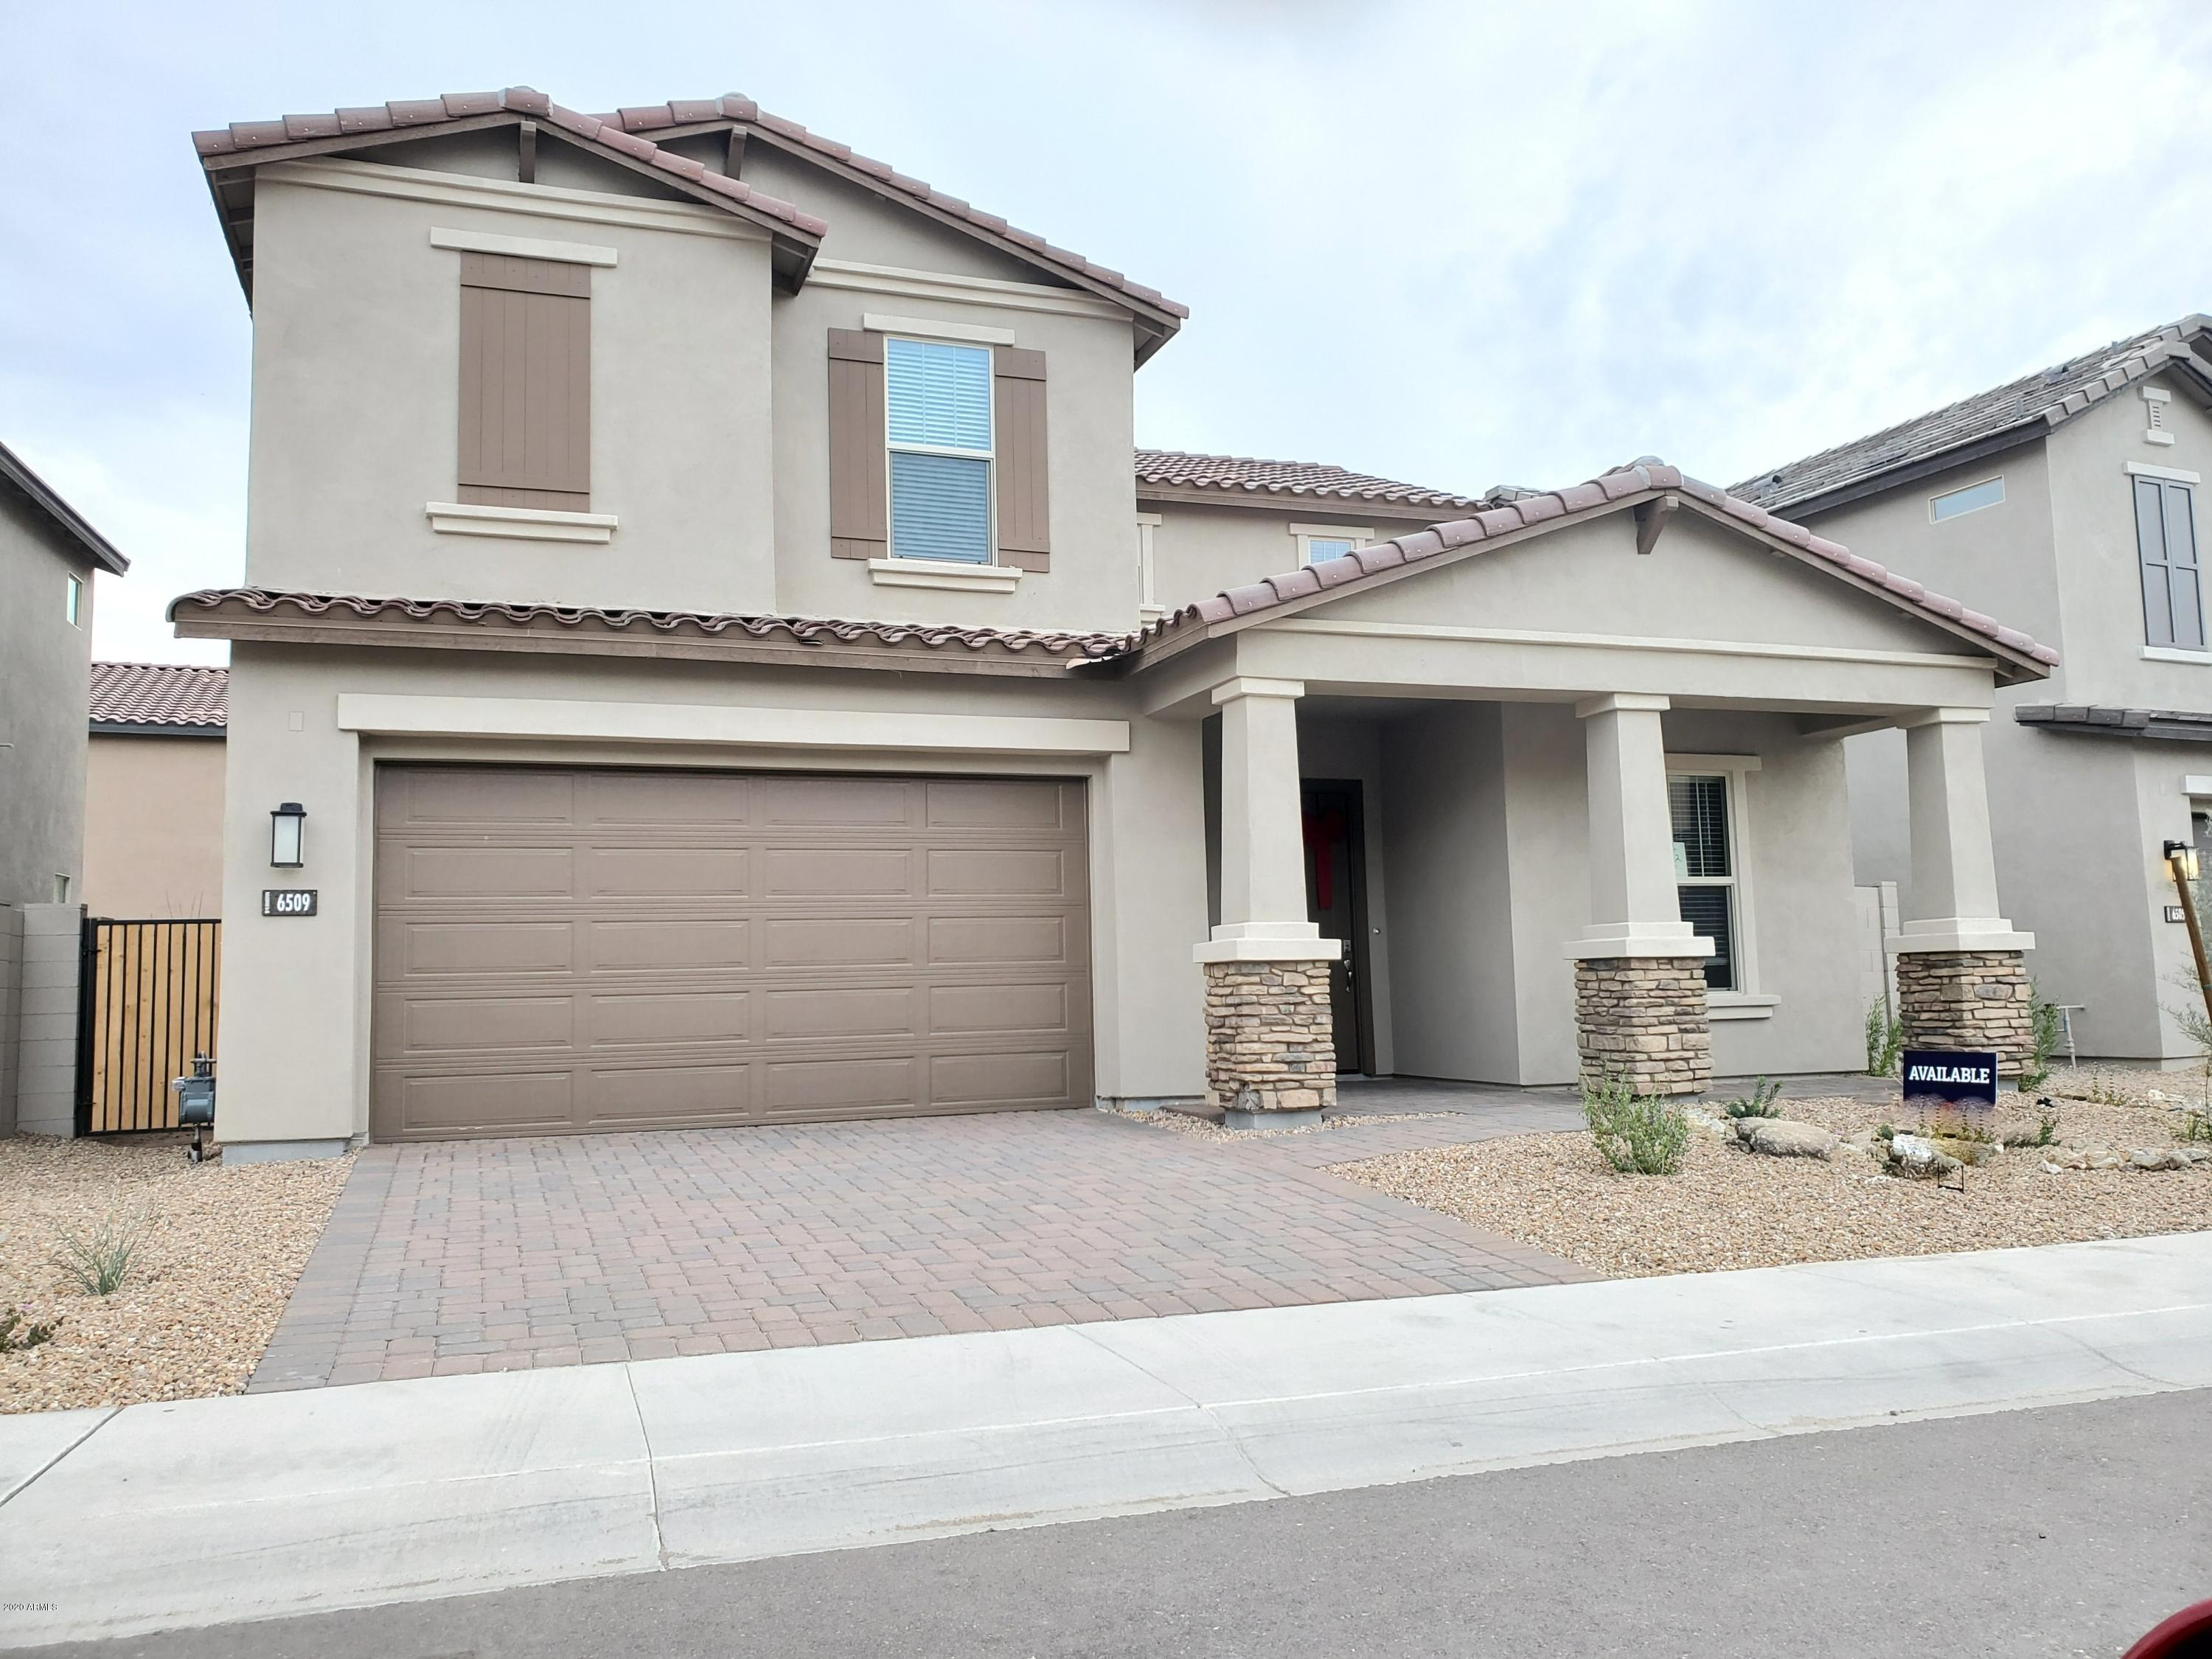 Photo of 6509 E ROSE MARIE Lane, Phoenix, AZ 85054